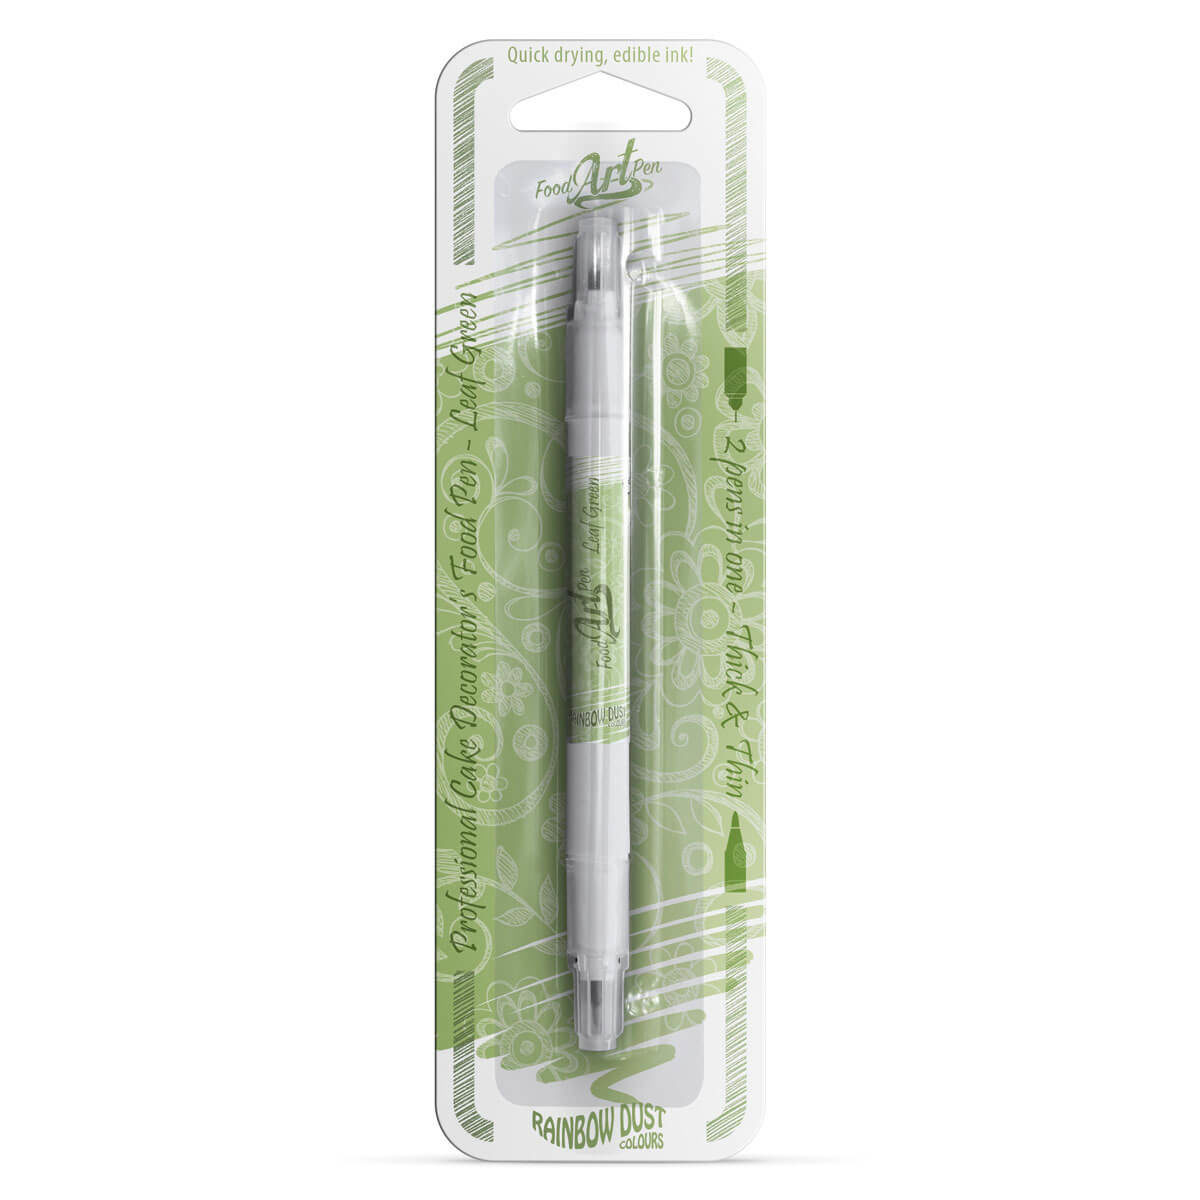 Rainbow Dust - Food Art Pen - Leaf Green / Verde Folha